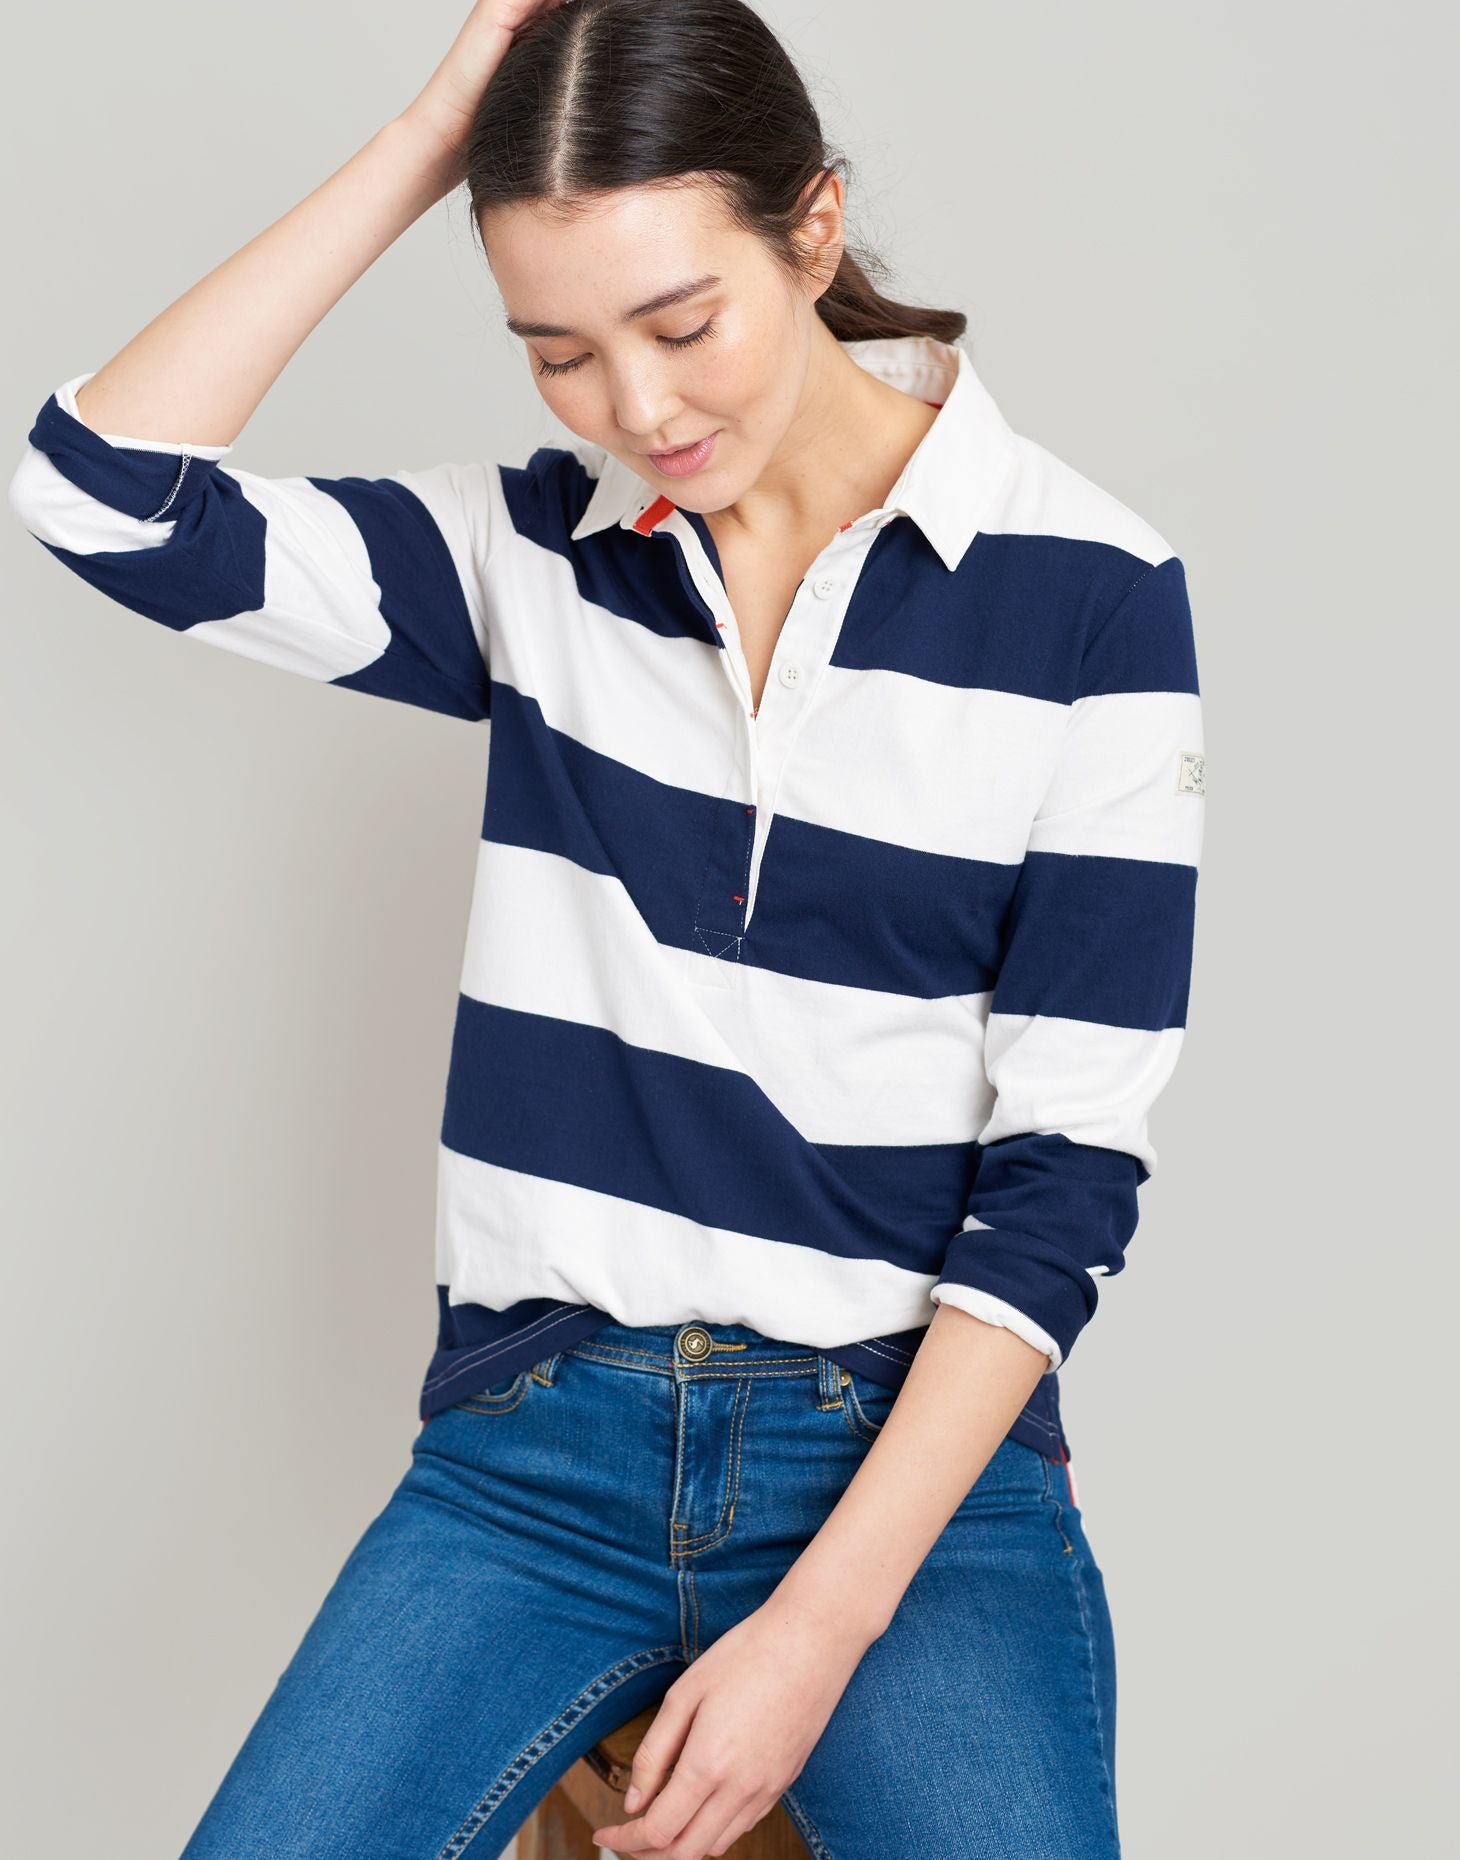 Joules Amber rugby shirt - Cream Navy Stripe